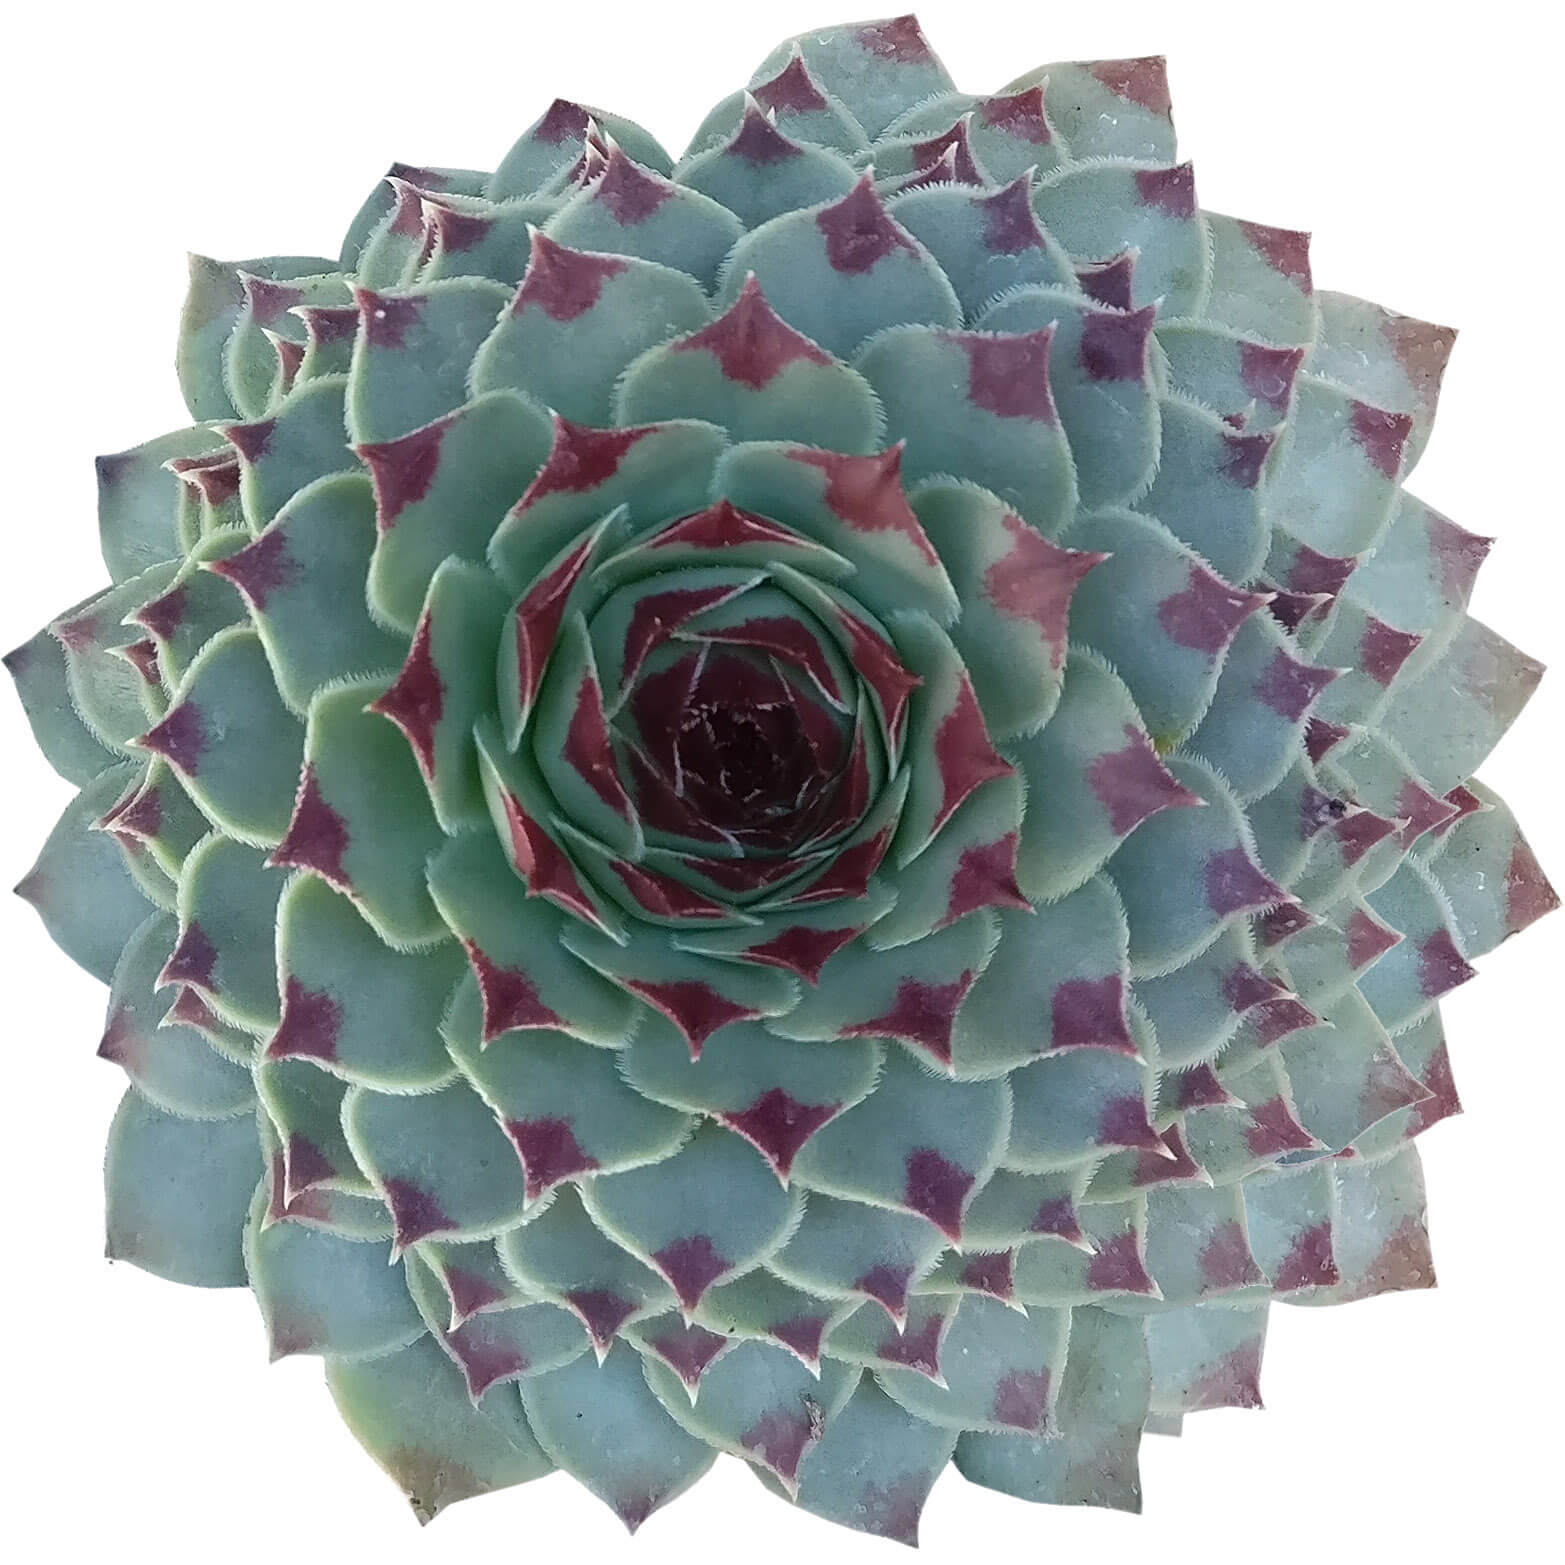 sempervivum calcareum for sale, succulent subscription, succulent plant, how to grow succulents, Succulents, succulents shop in California, succulent care guide, indoor succulents, Succulents shop near me, sempervivum calcareum in California, How to grow sempervivum calcareum